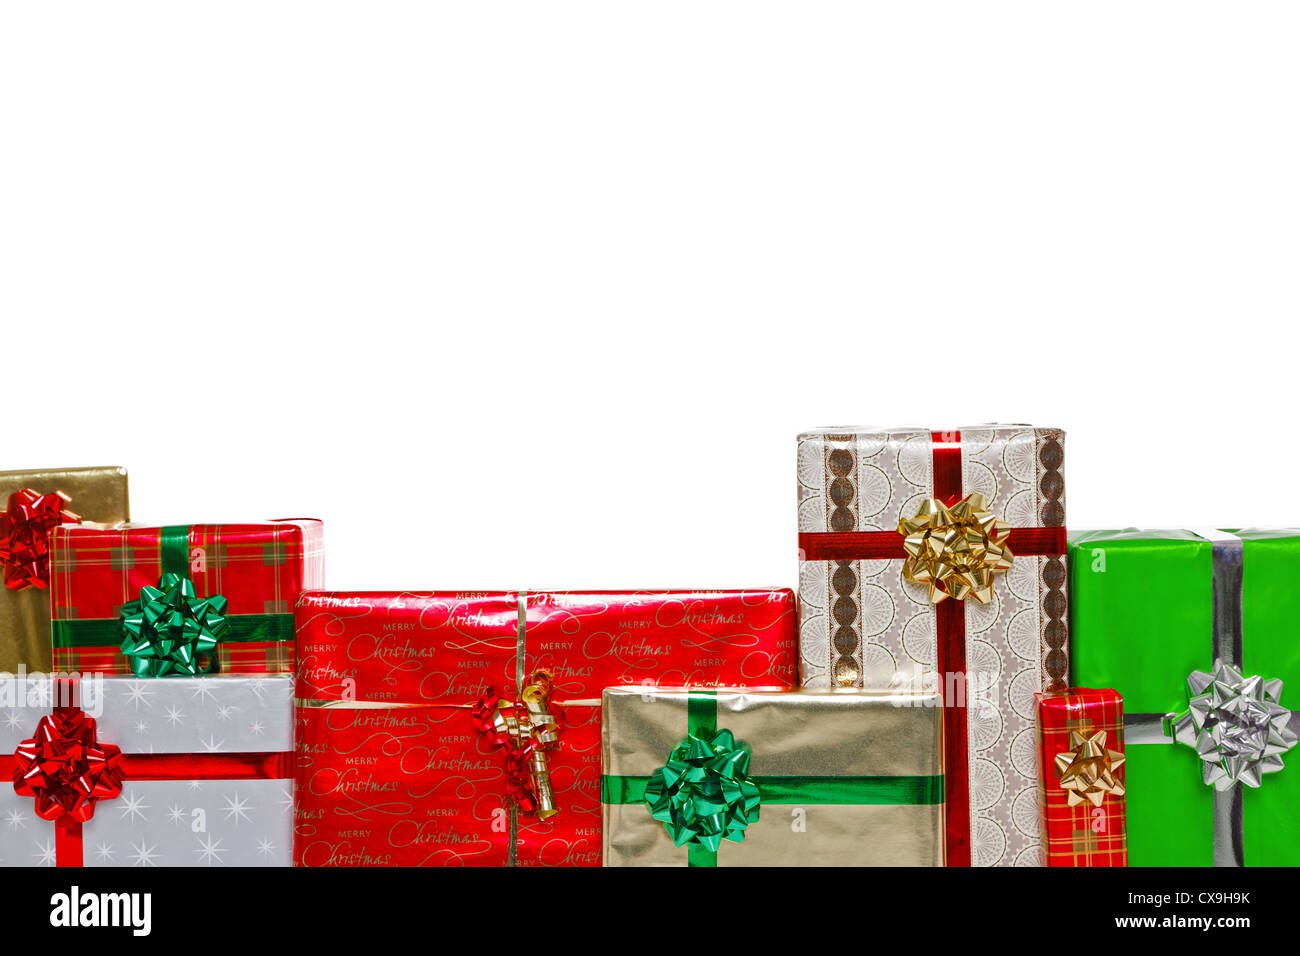 A group of gift wrapped Christmas presents with bows and ribbons - Stock Image